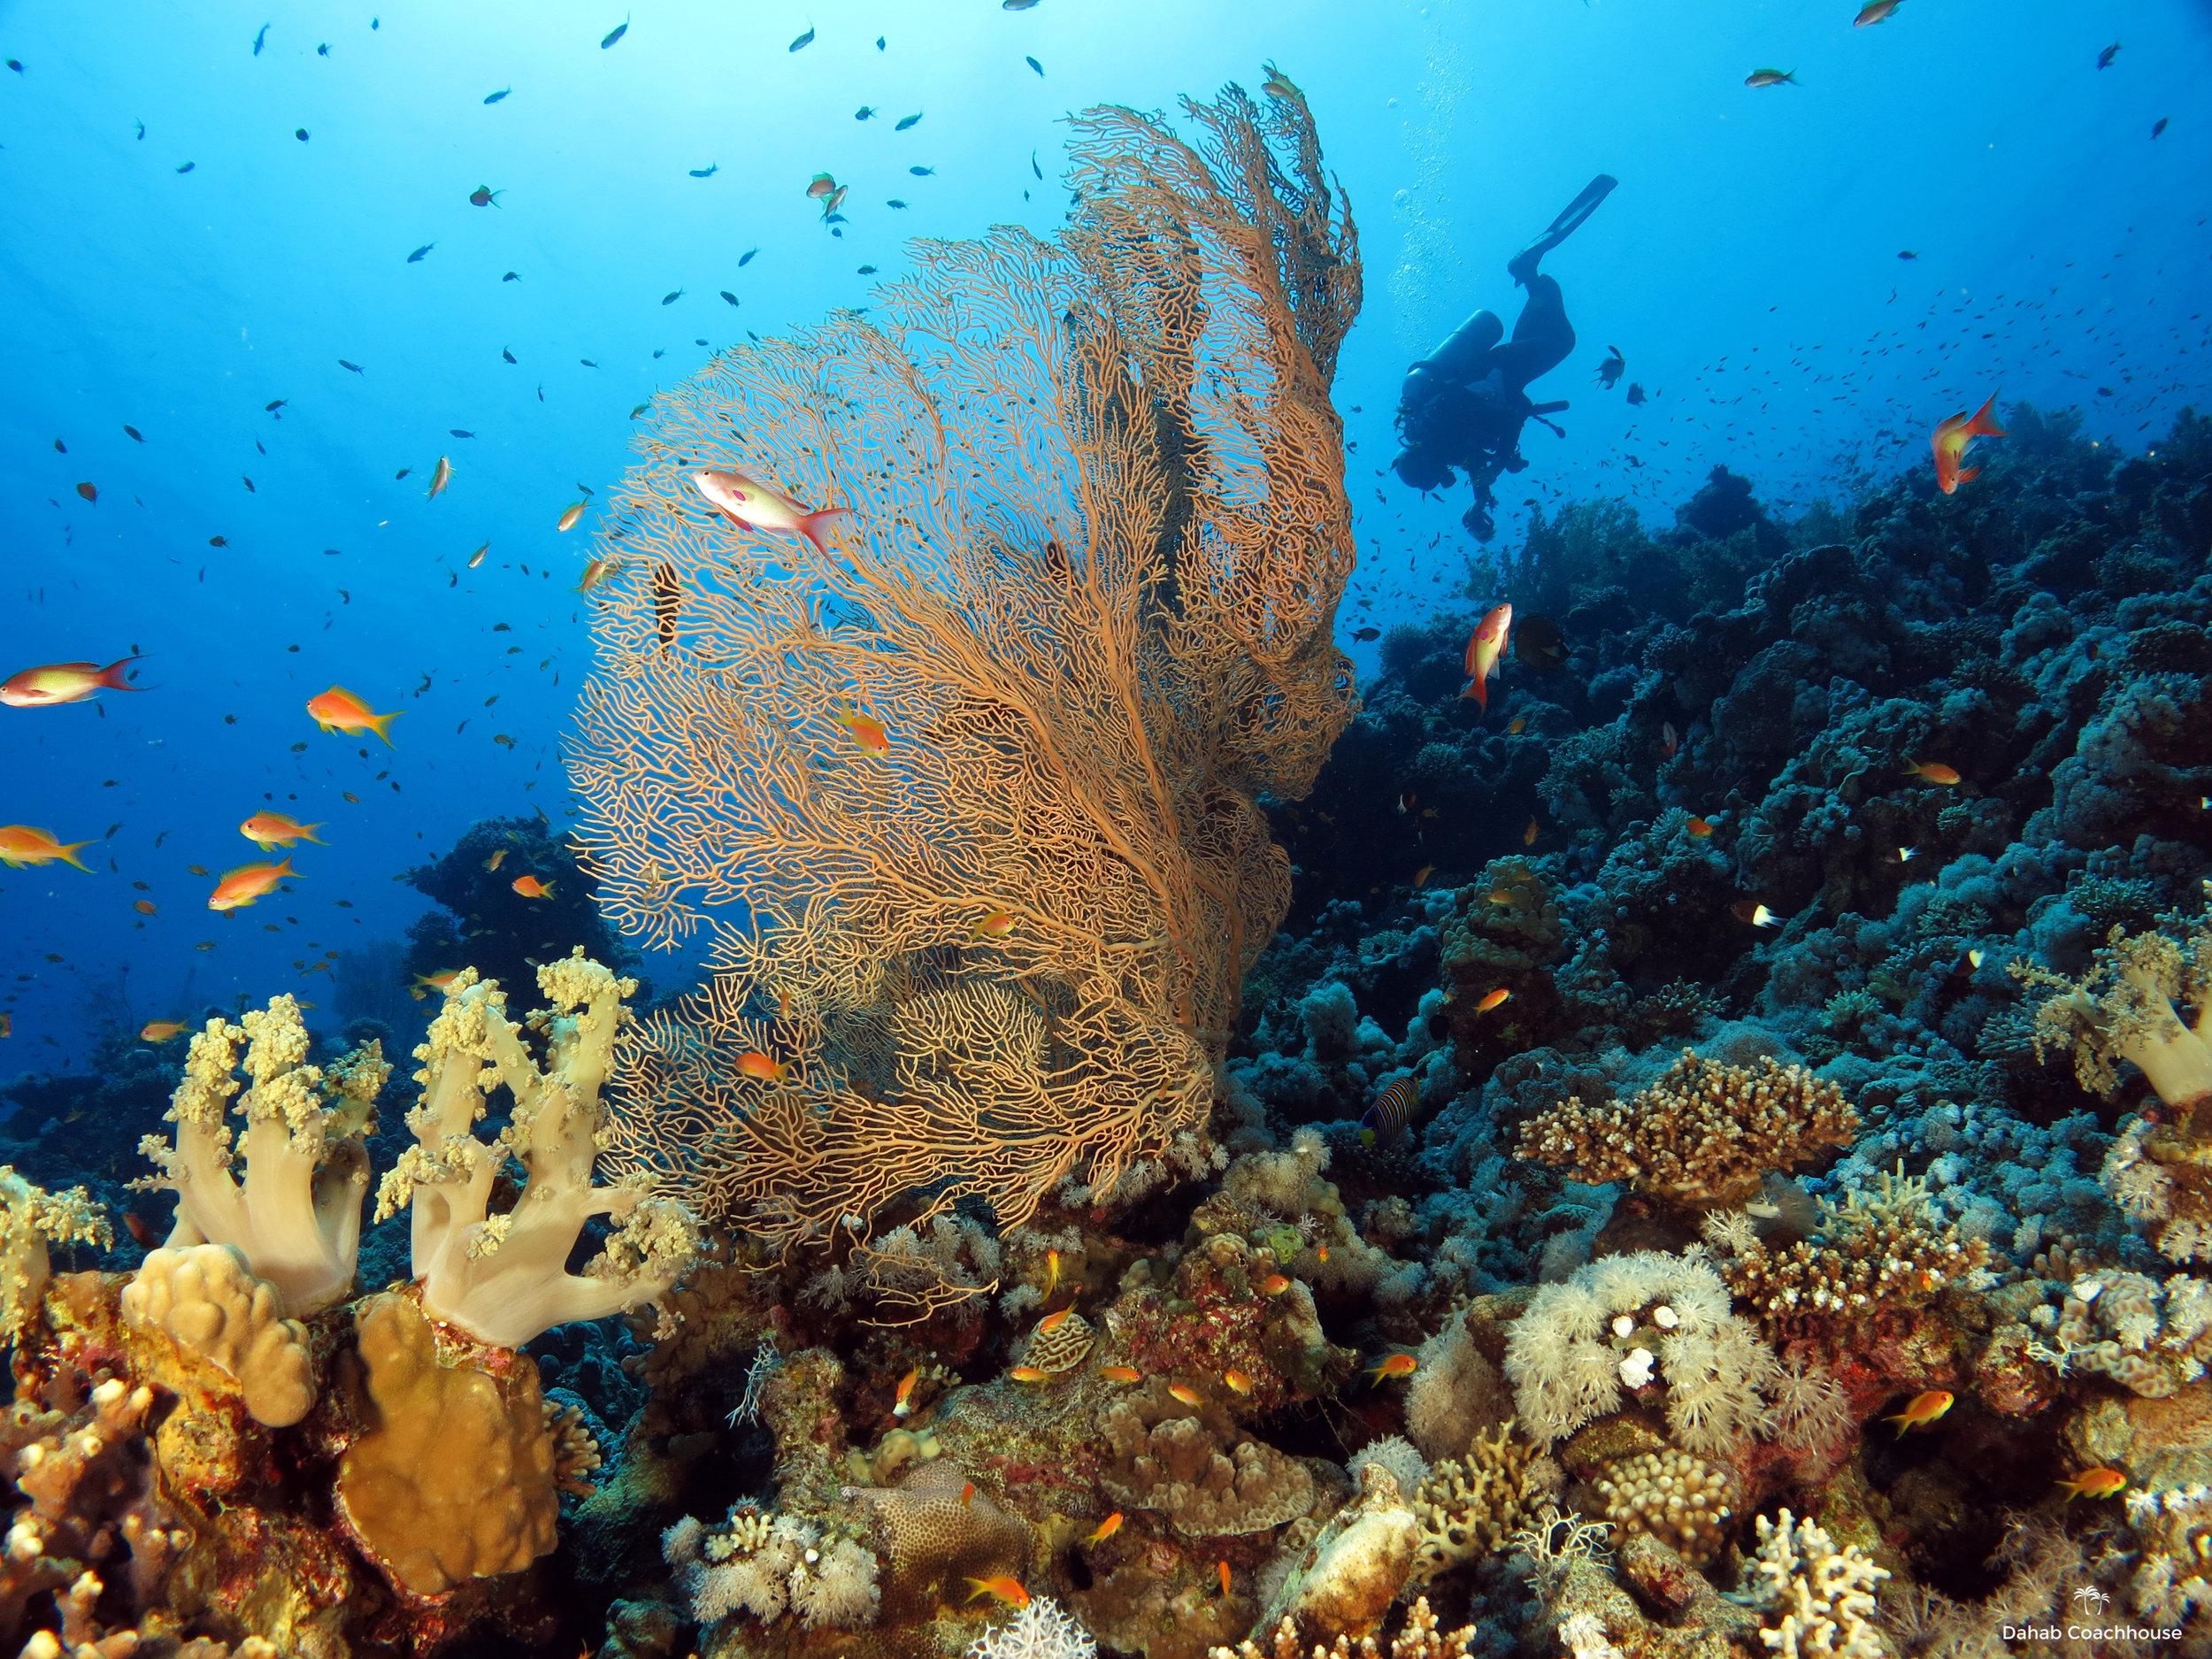 Dahab_Coachhouse_Egypt_Red_Sea_Diving_Beach_Accommodation_Holiday_Travel_Diver_Gorgonian.JPG